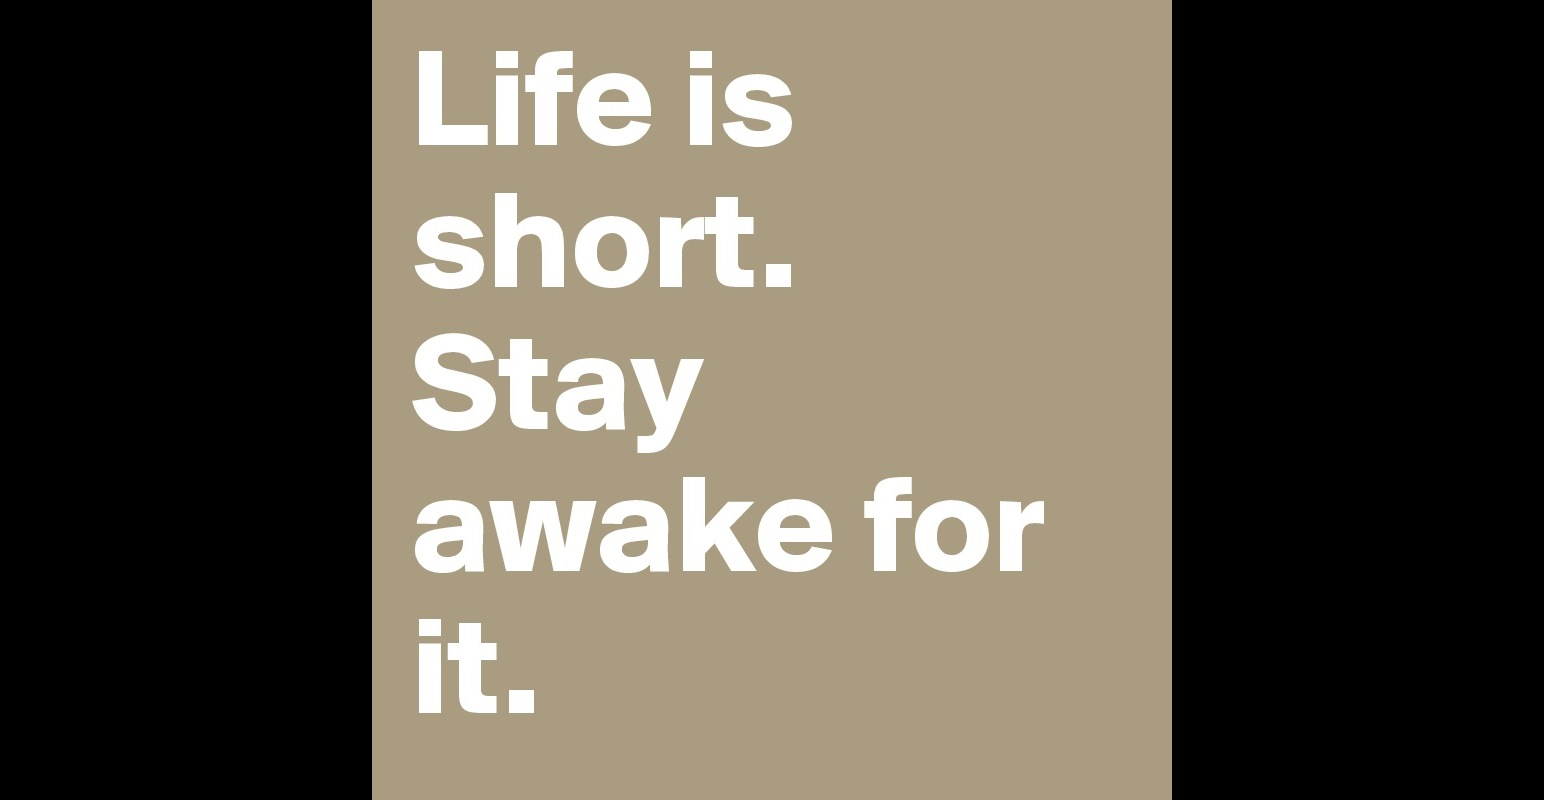 life is short stay awake for it post by hpandchocolate on stay awake for it post by hpandchocolate on boldomatic